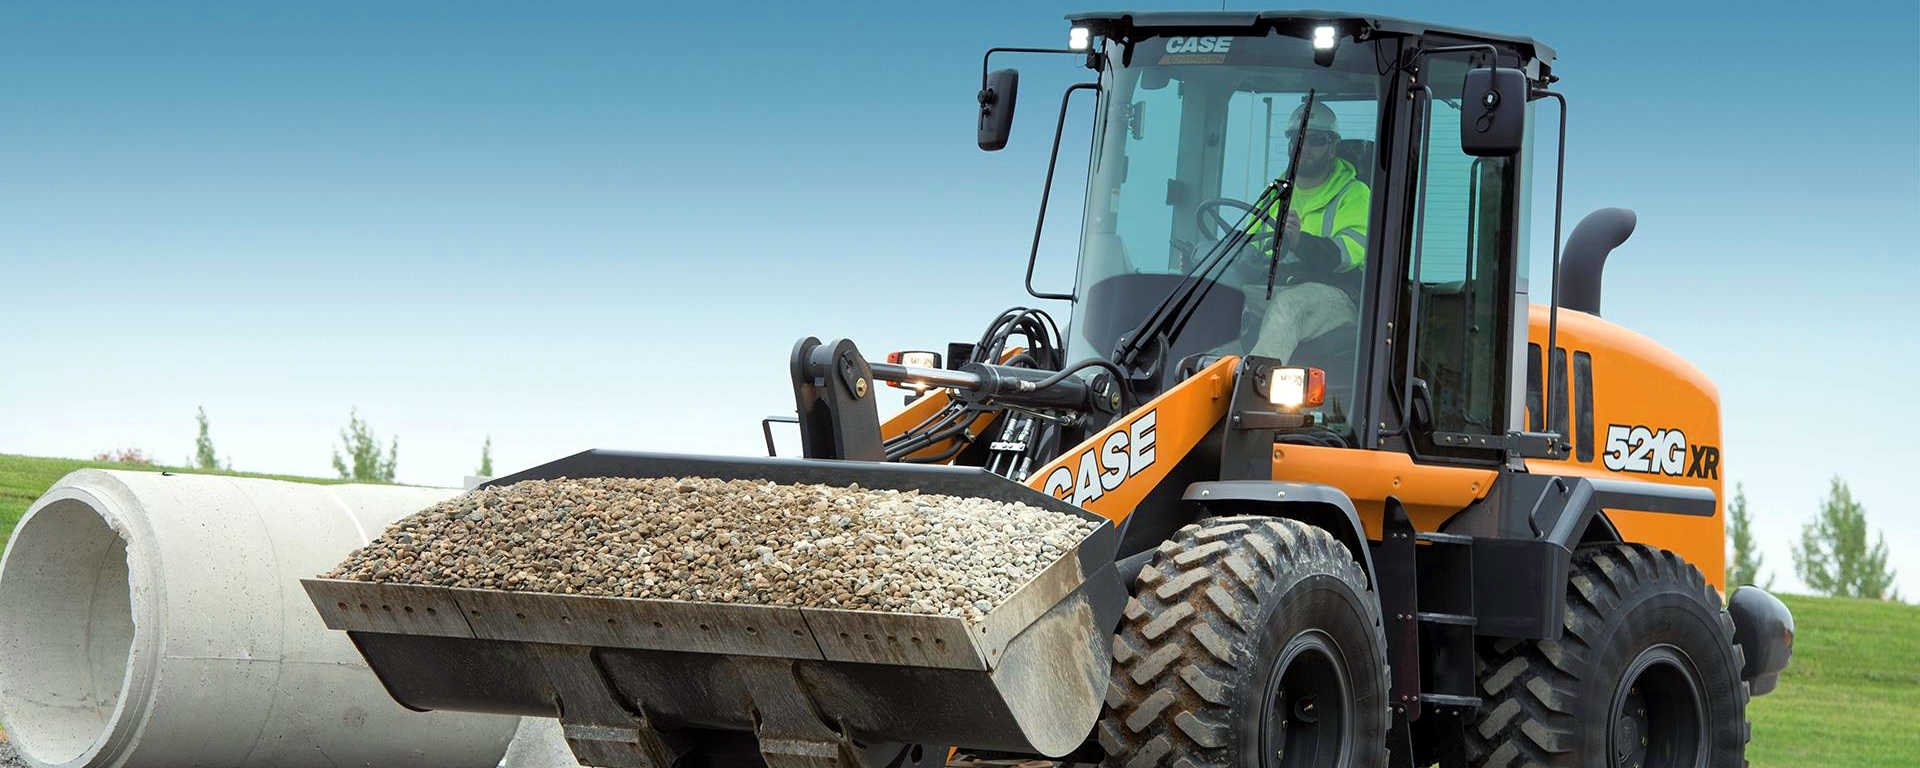 CASE serie G wheel loaders 521g